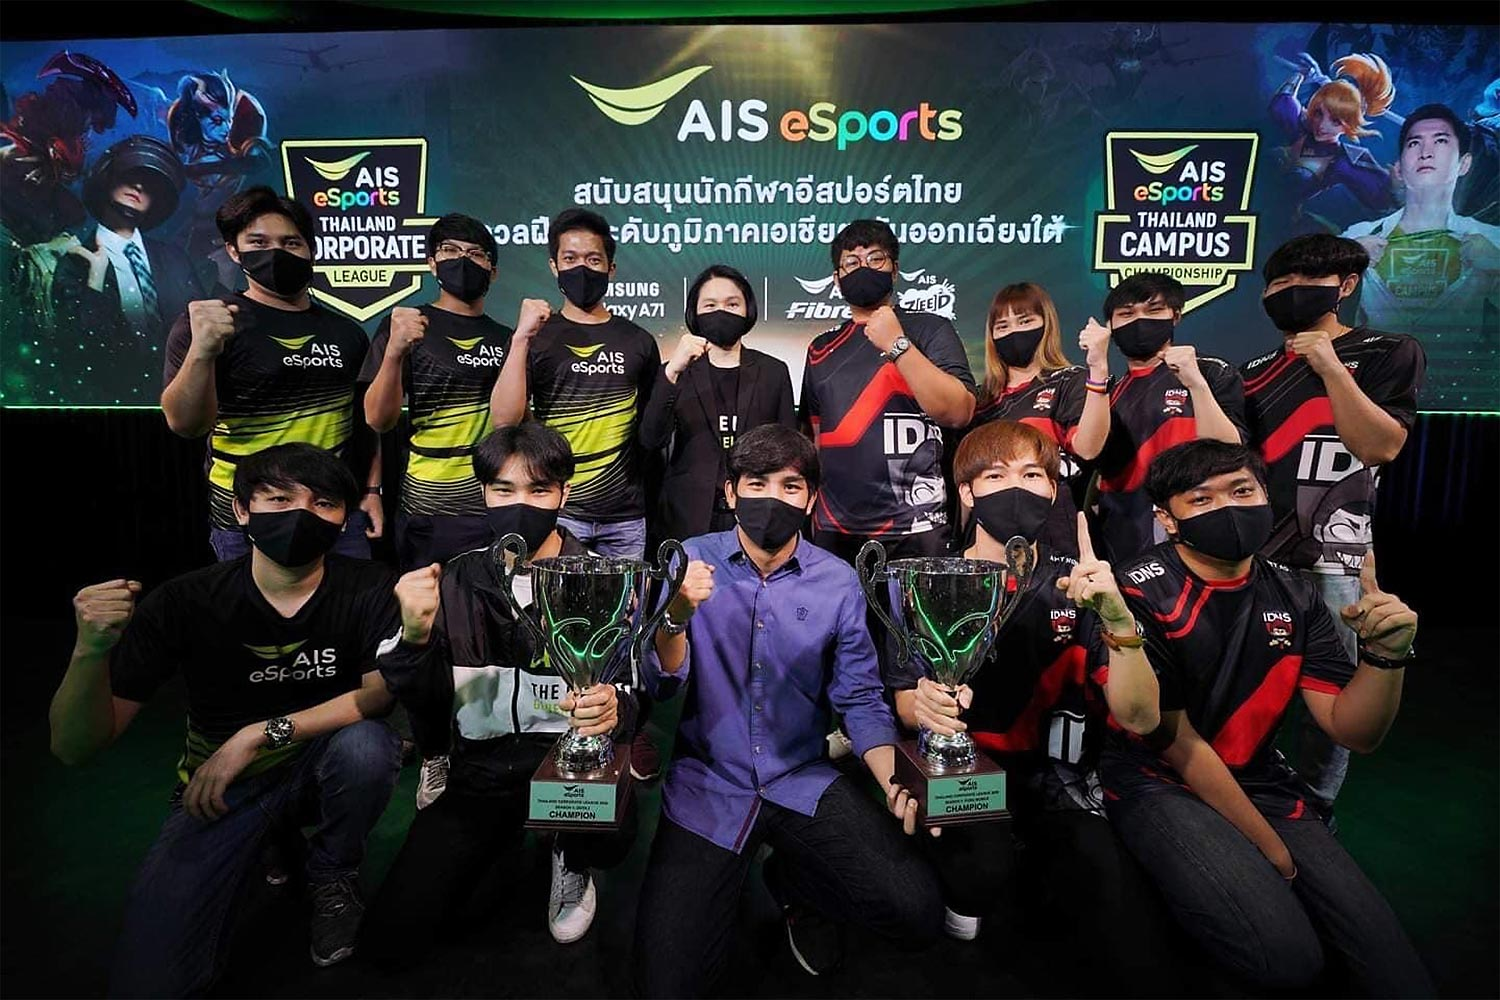 Winners of competitions hosted by AIS such as Thailand Campus Championship 2020 will be able to practice e-sports at the AIS e-sports studio.